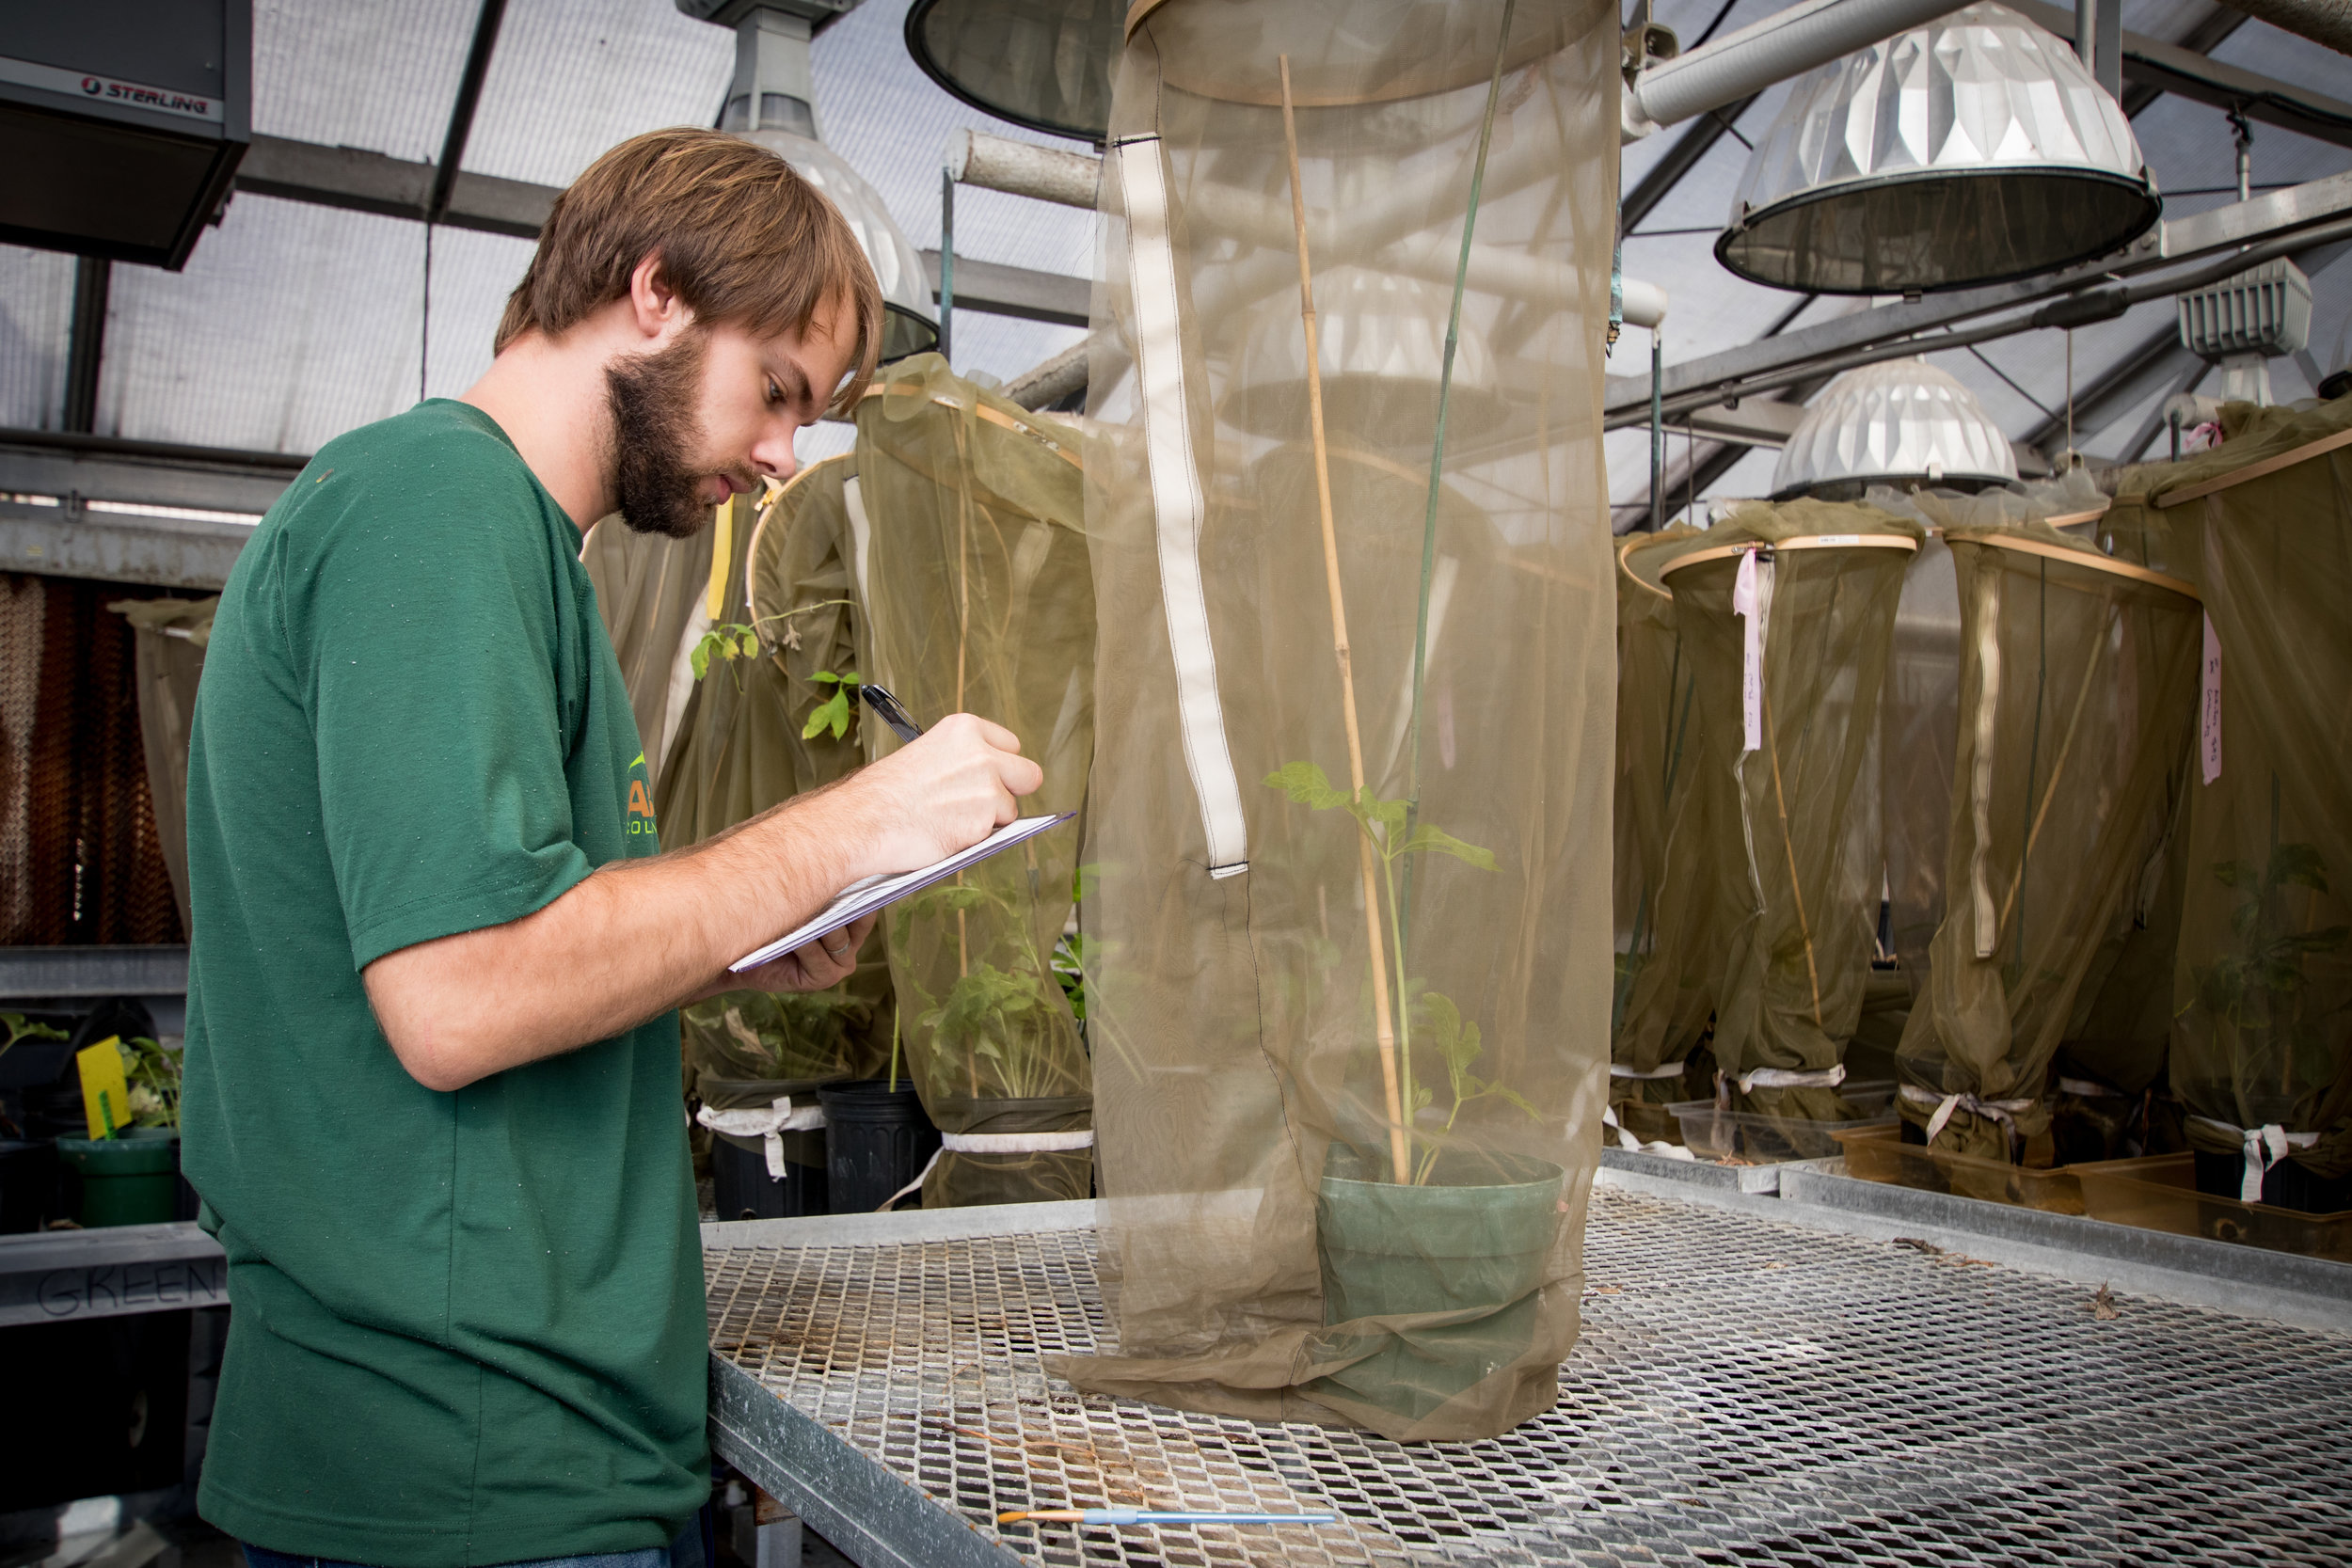 Doctoral student Will Shoenberger counts Entylia carinata treehoppers on a host plant in the greenhouse. Will studyies the evolution of complex behaviors, including mutualistic interactions and niche construction, using various ant, treehopper, and plant species. Photo:  Impact Media Lab